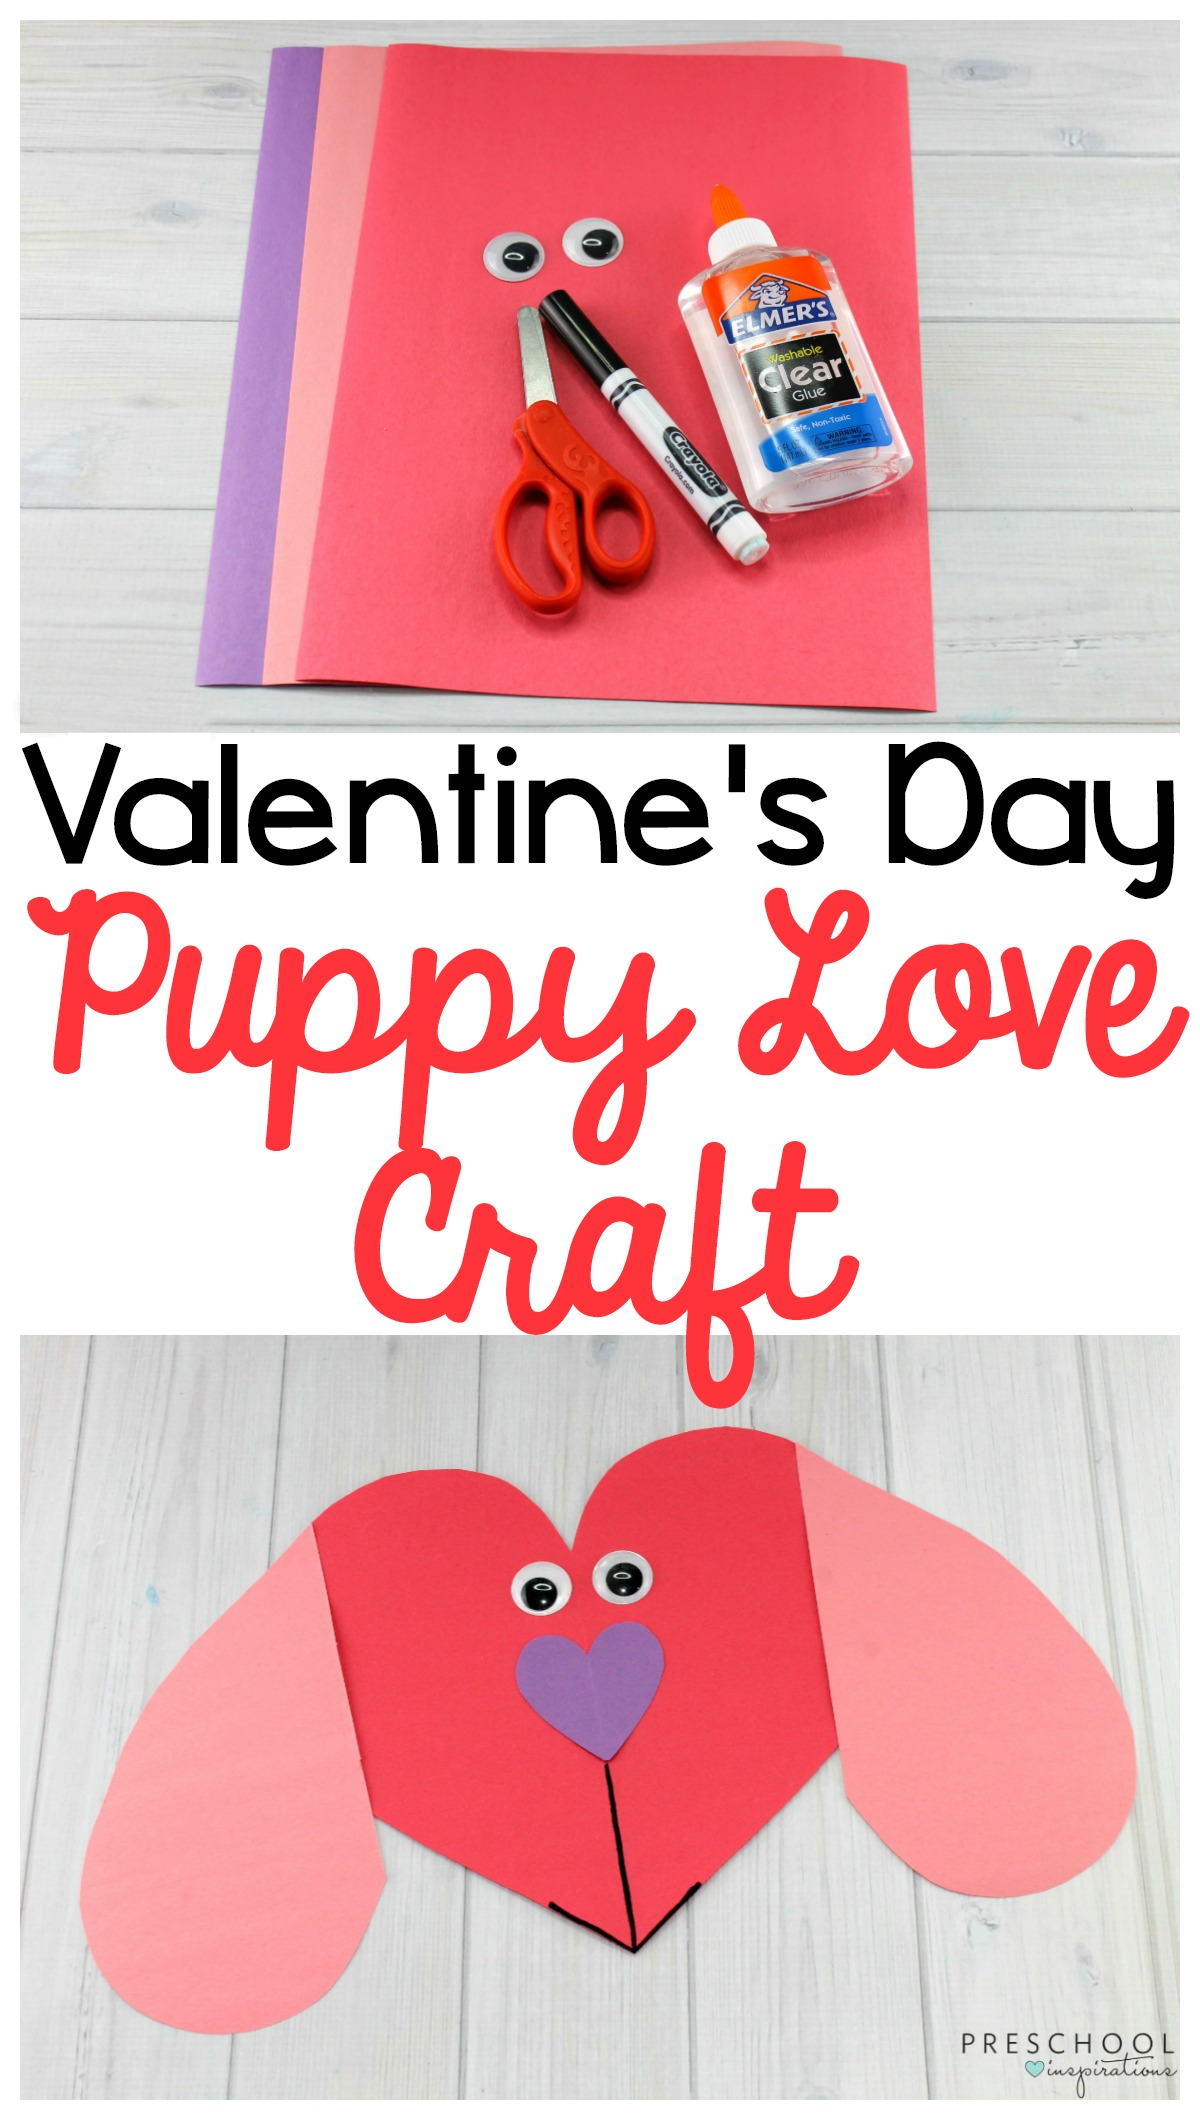 Puppy Love Preschool Heart Craft To Make This Valentine S Day